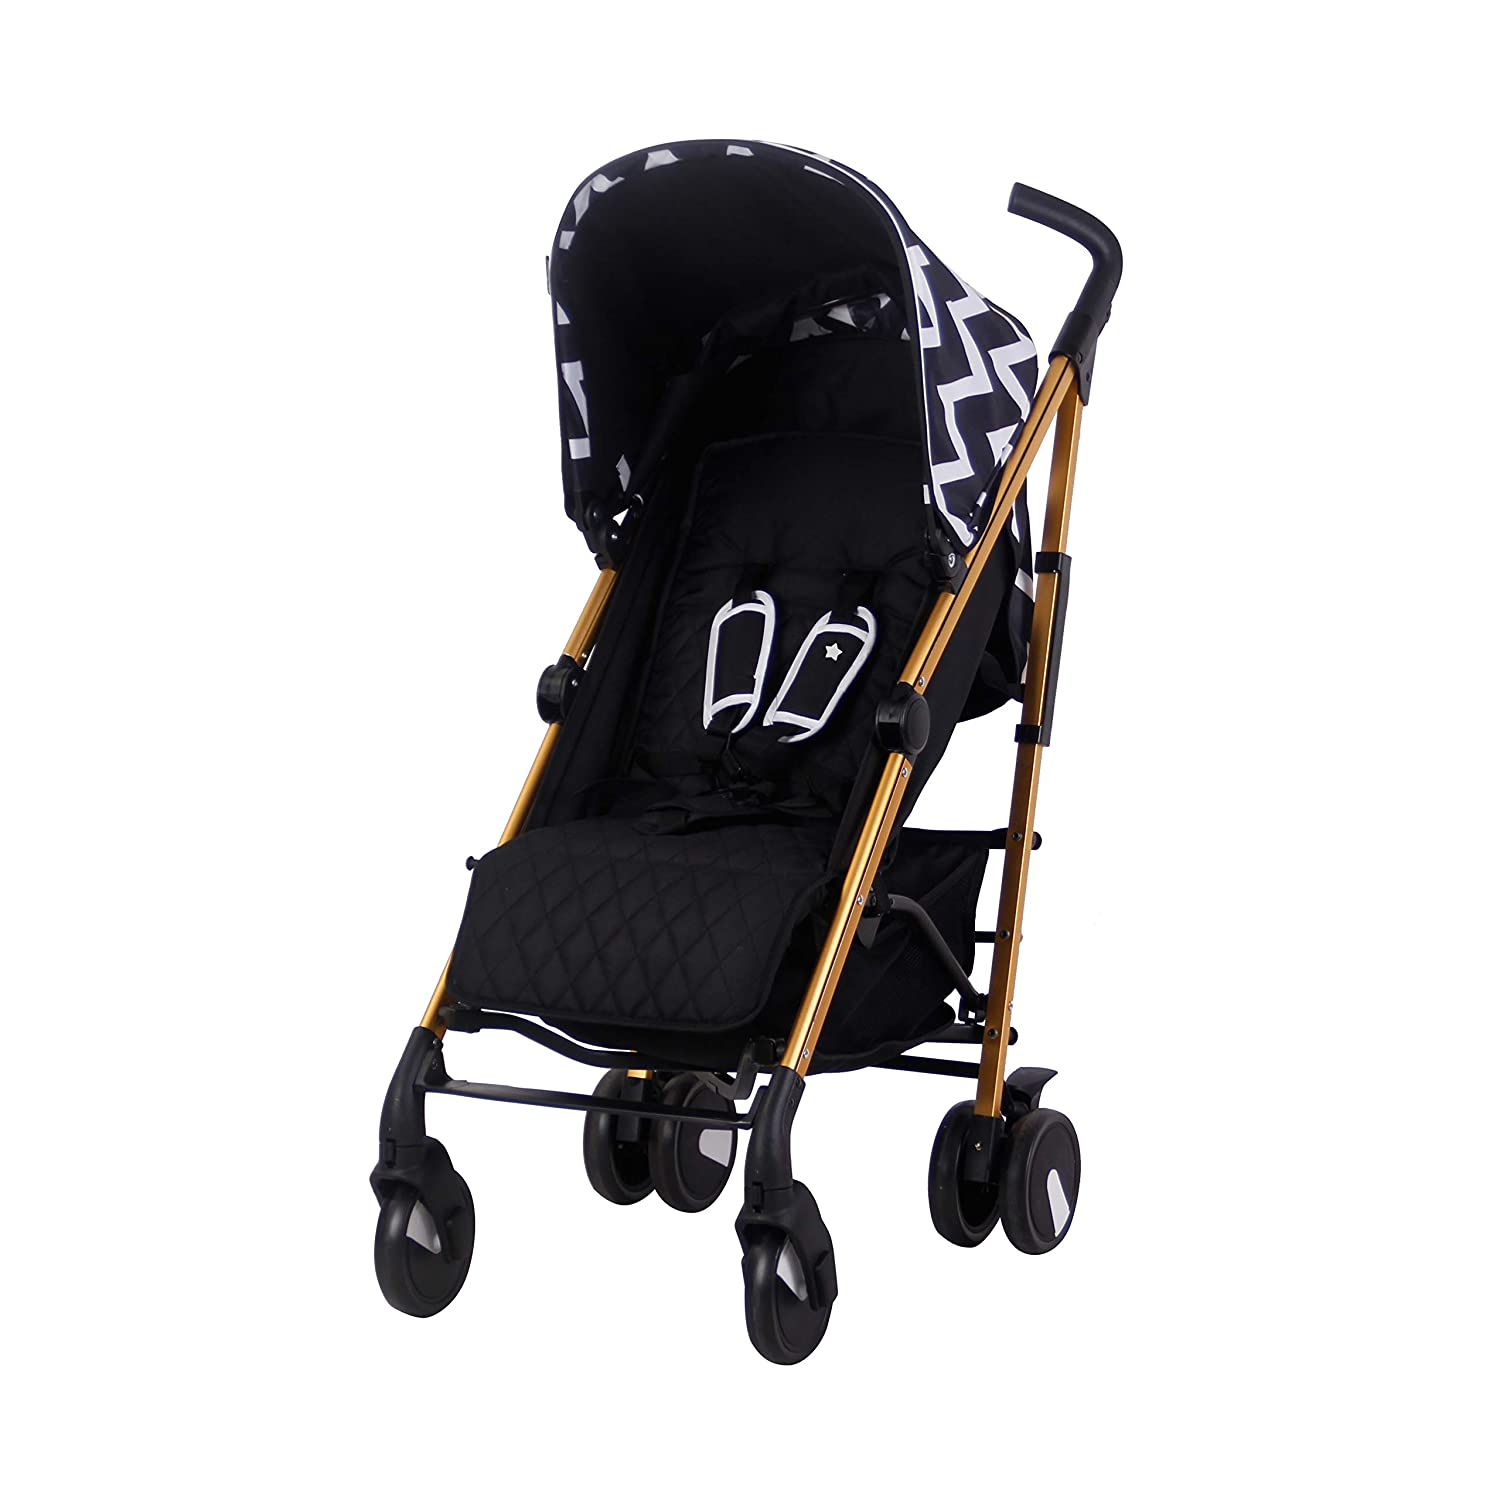 Black White Chevron US51 Baby Stroller by My Babiie Lightweight Infant Travel Stroller with Carry Handle Portable and Compact Umbrella Stroller – Gold Frame Suitable from Newborn-Toddler 33lbs